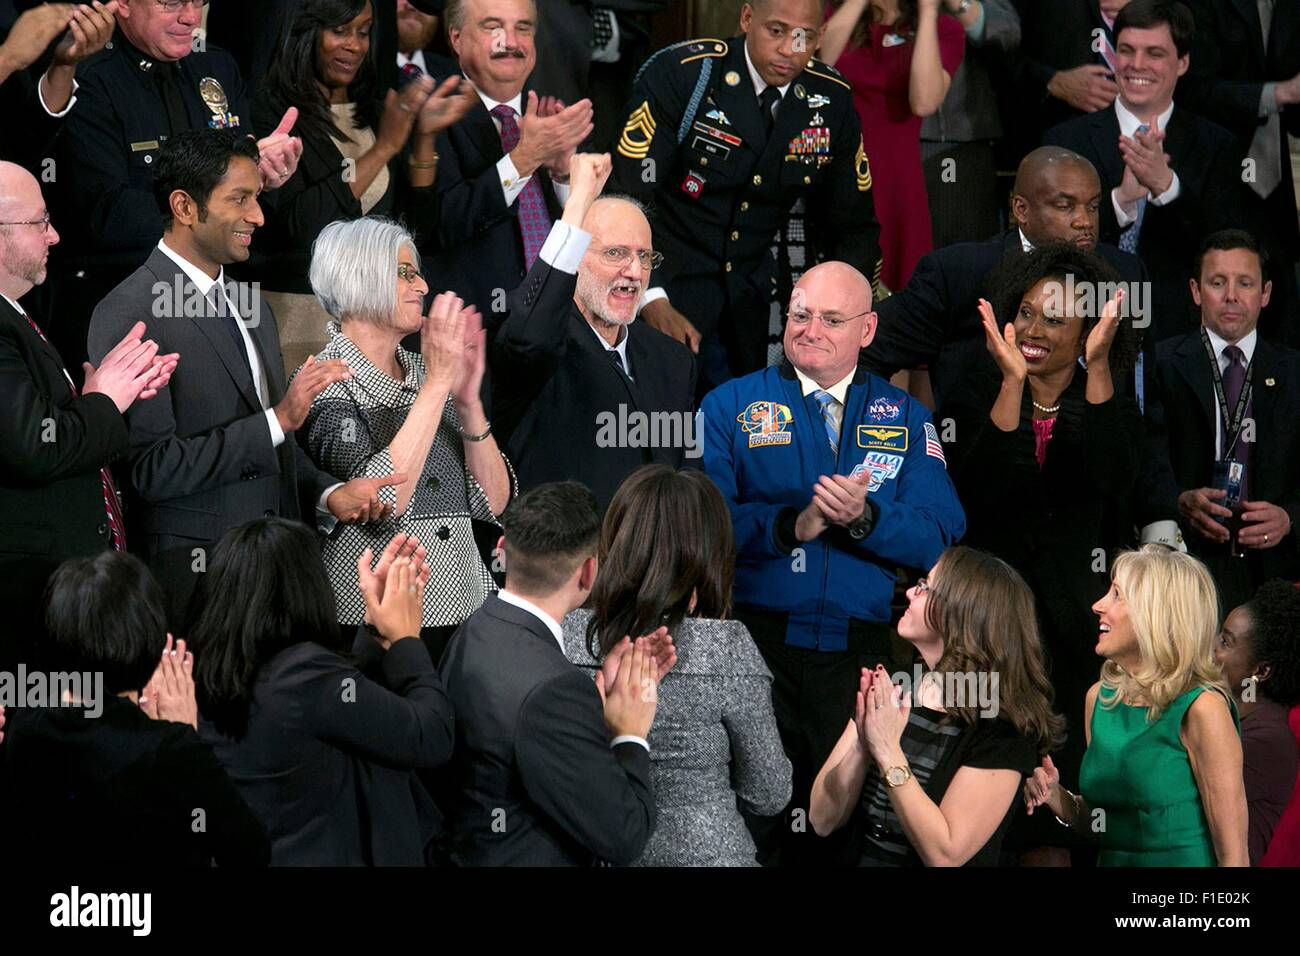 Alan Gross, who was recently released from prison in Cuba, pumps his fist in the air after being mentioned by President - Stock Image